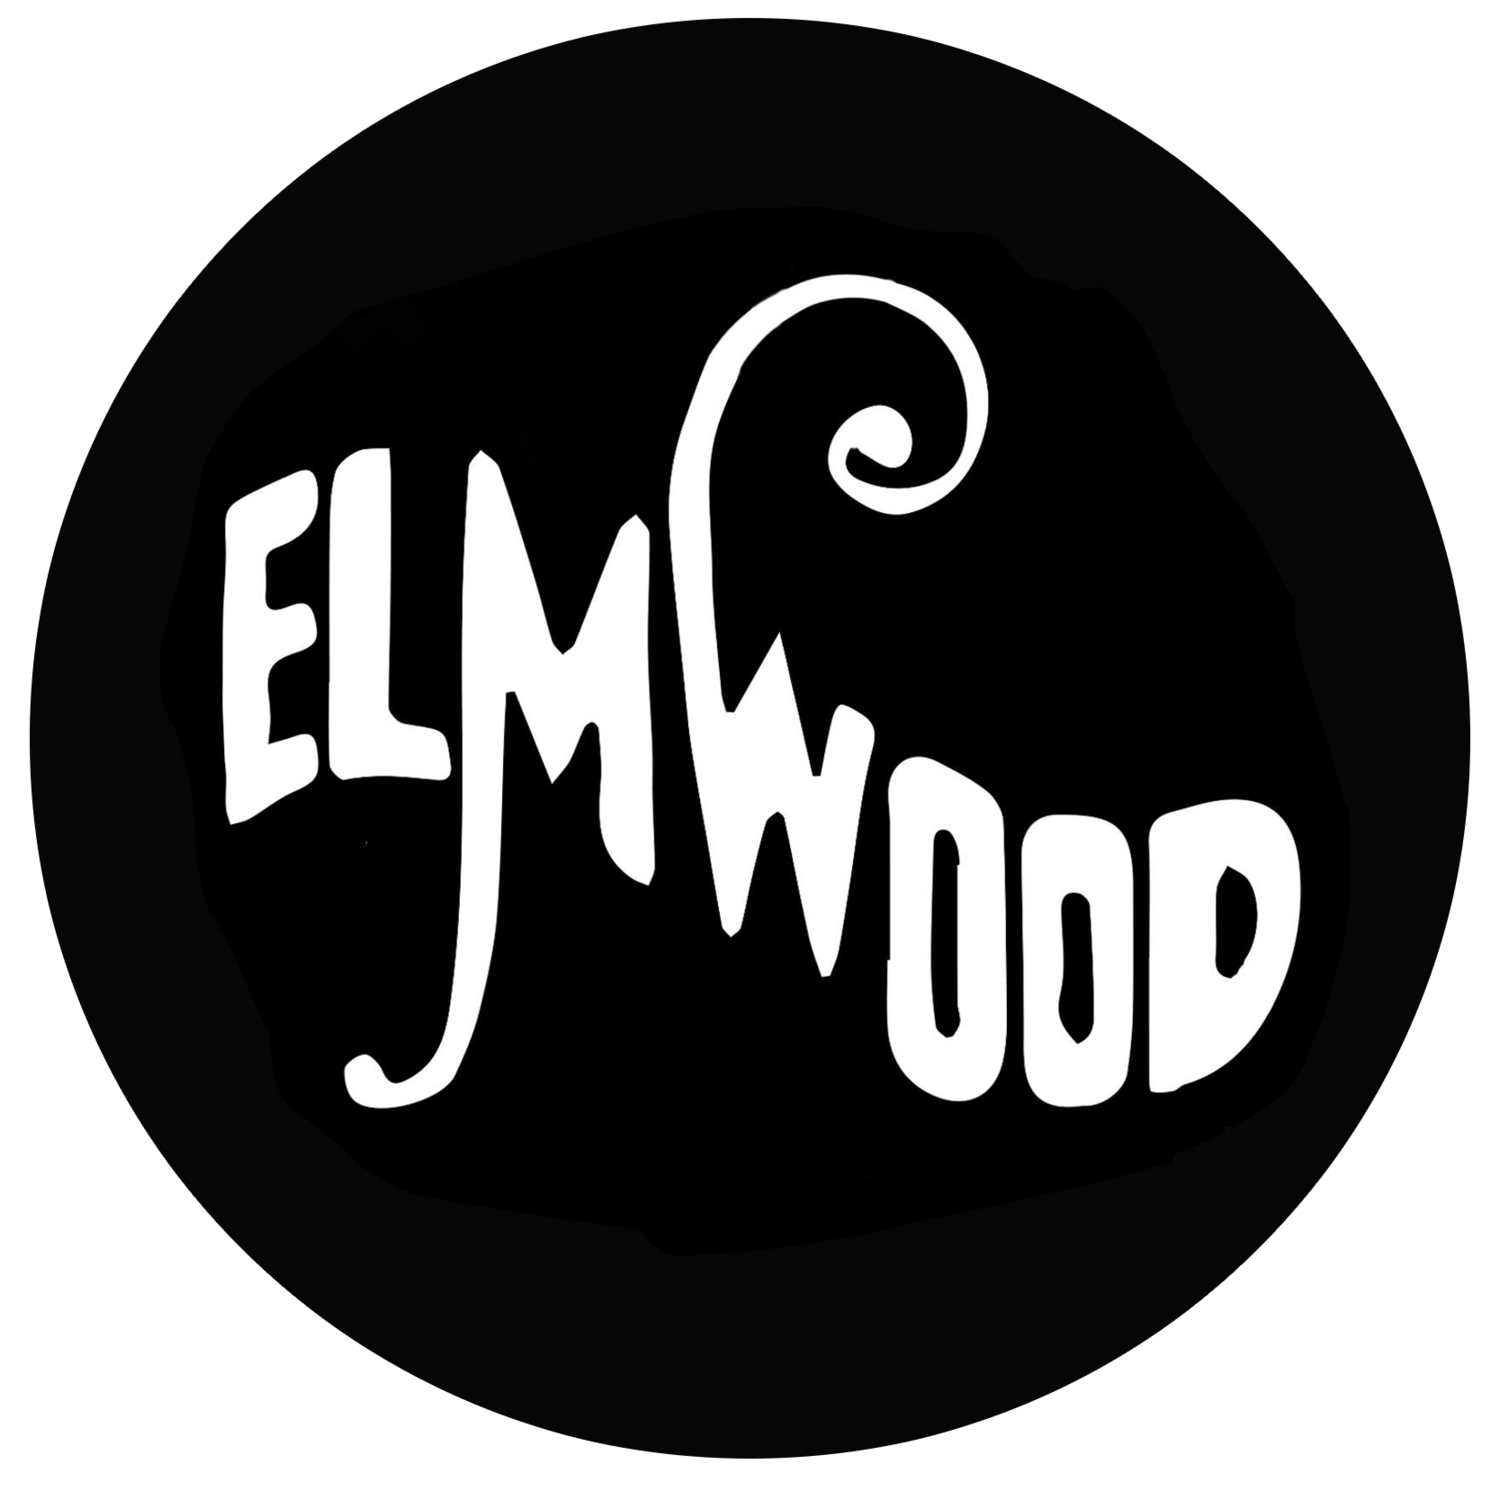 Elmwood Neighborhood Association